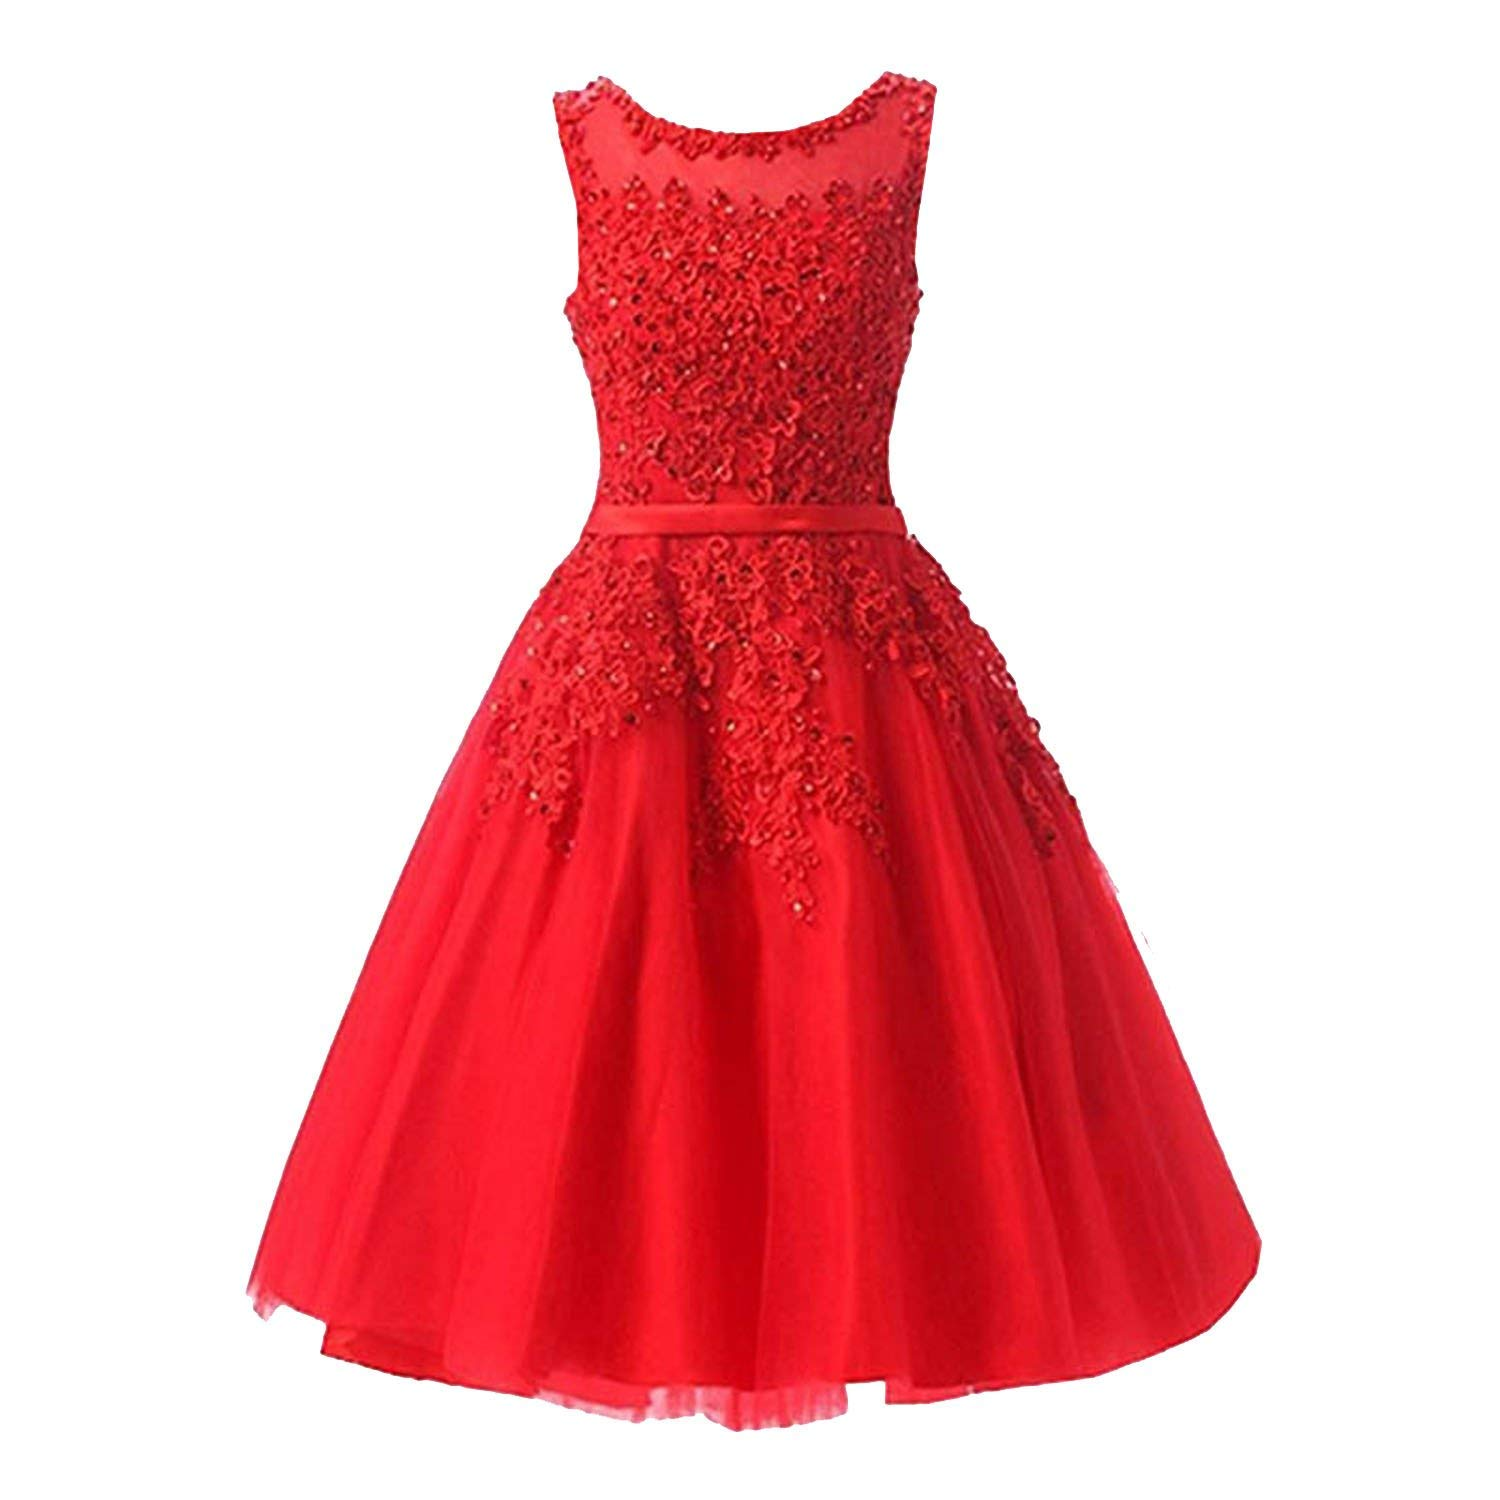 Red230 meetyou Lace Many color Dinner Bridesmaids Dresses Party Short Formal Dress LX073